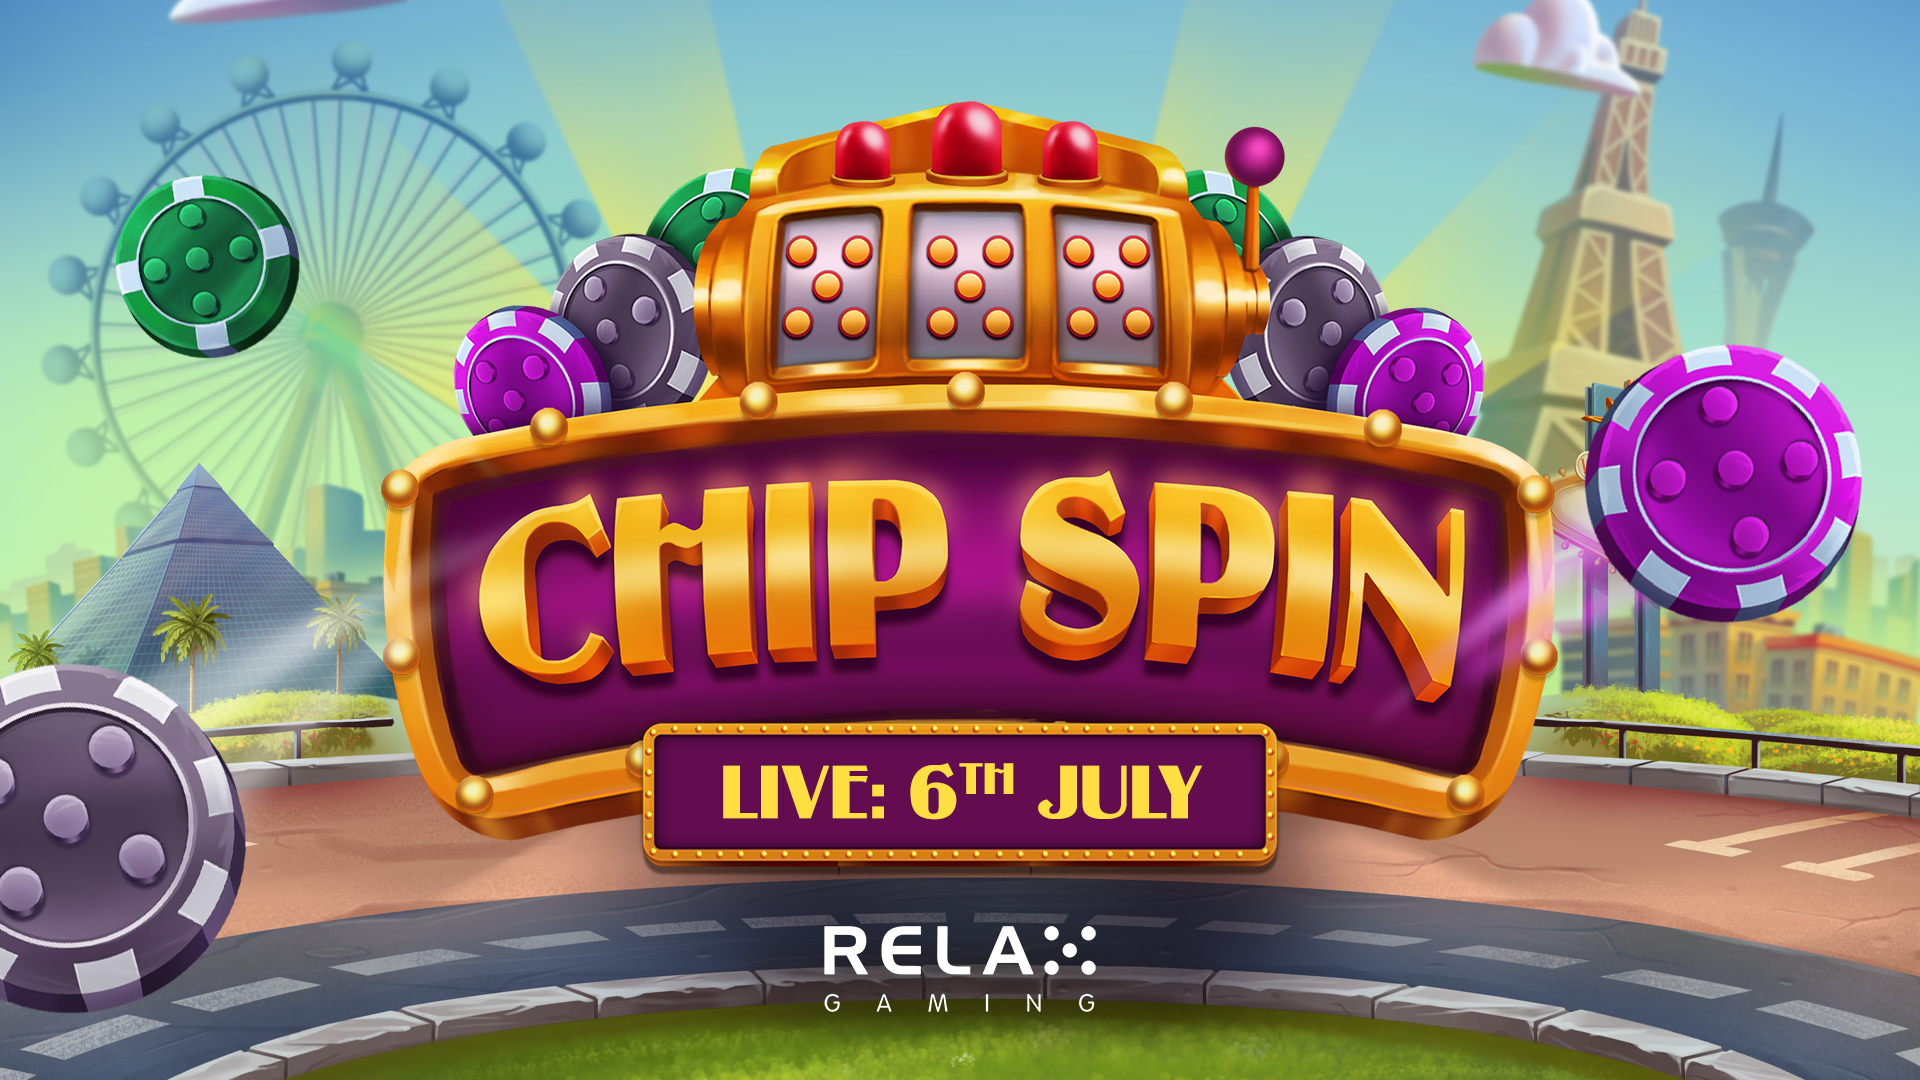 Relax Gaming puts its cards on the table for Chip Spin